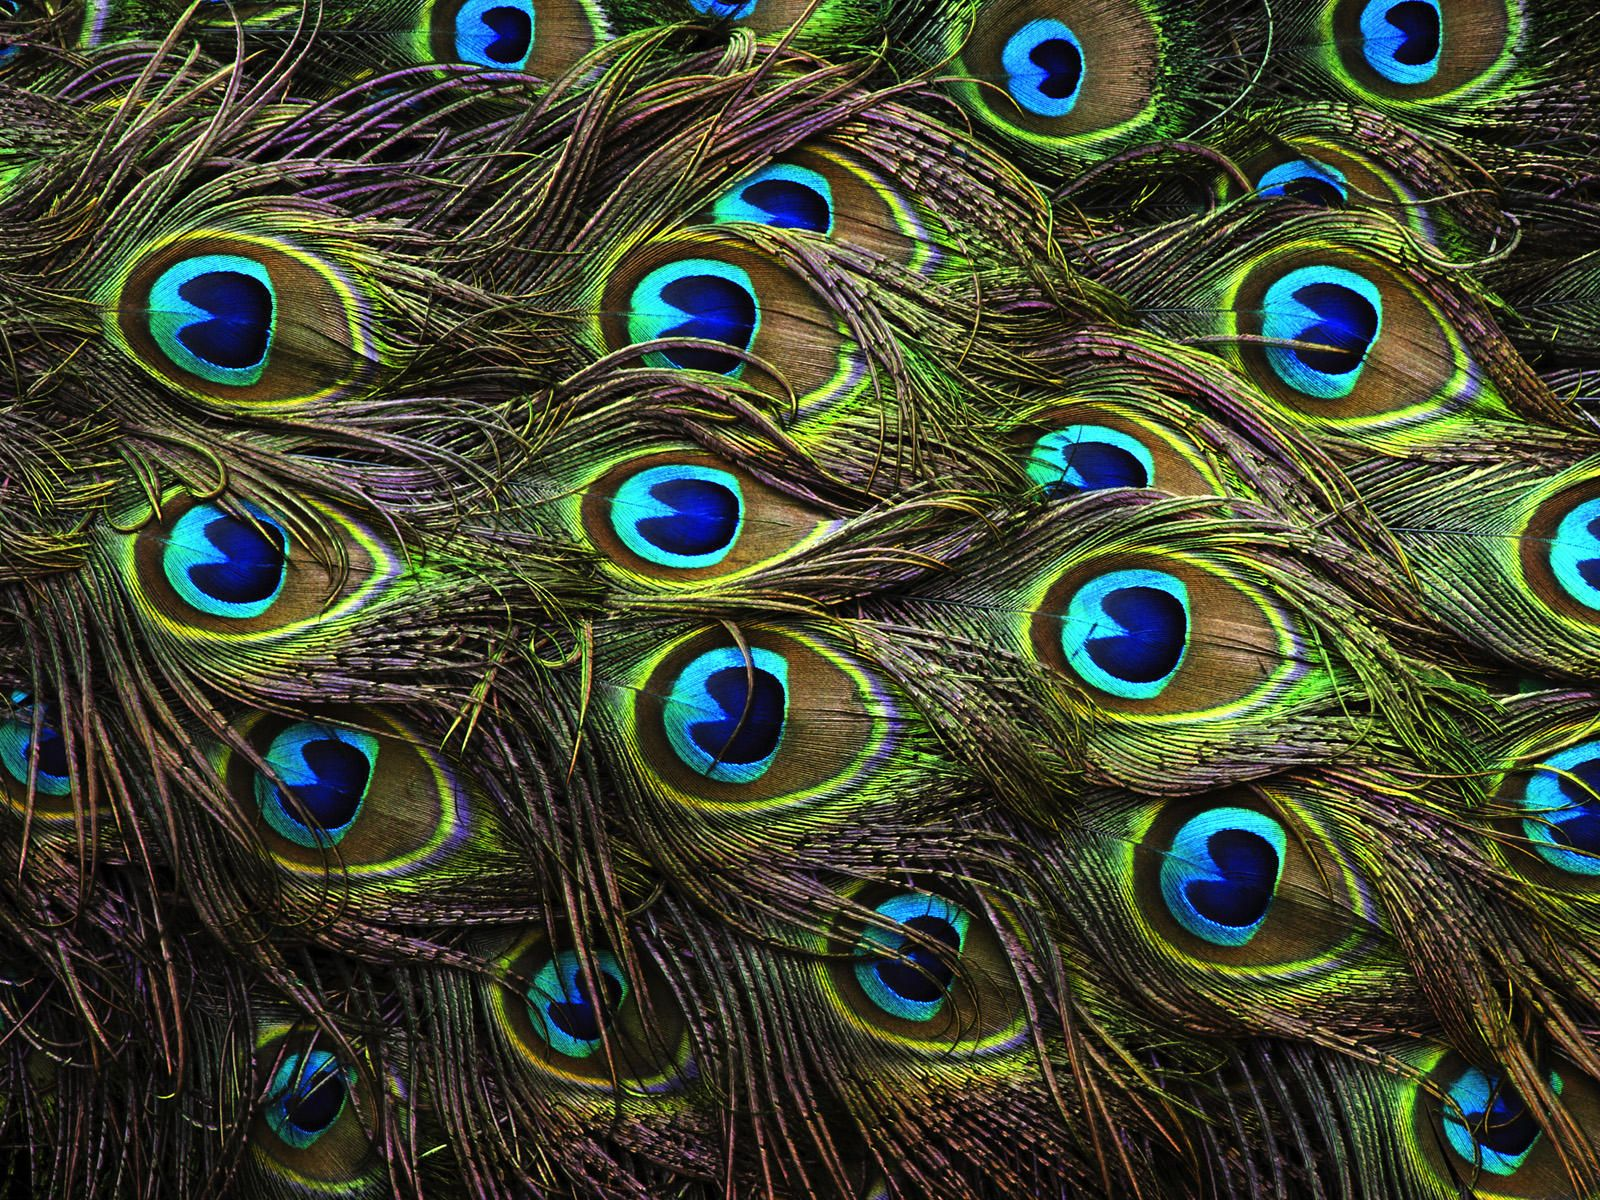 Peacock Feathers Background HD Wallpapers - Genovic.com | Things ...